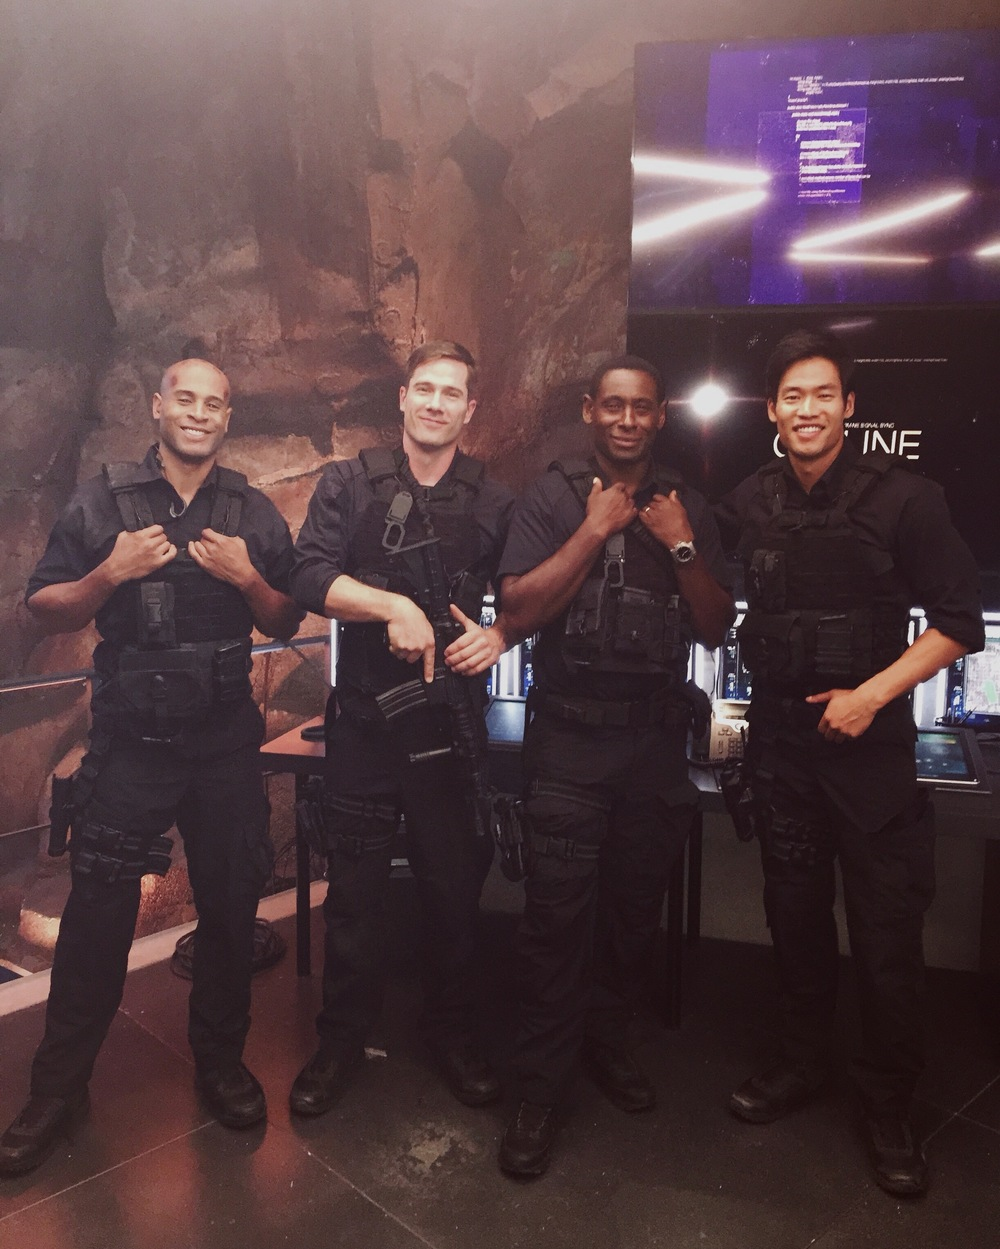 Actors Ayo Sorrells, Luke Macfarlane, David Harewood, and David Lim on the set of Supergirl